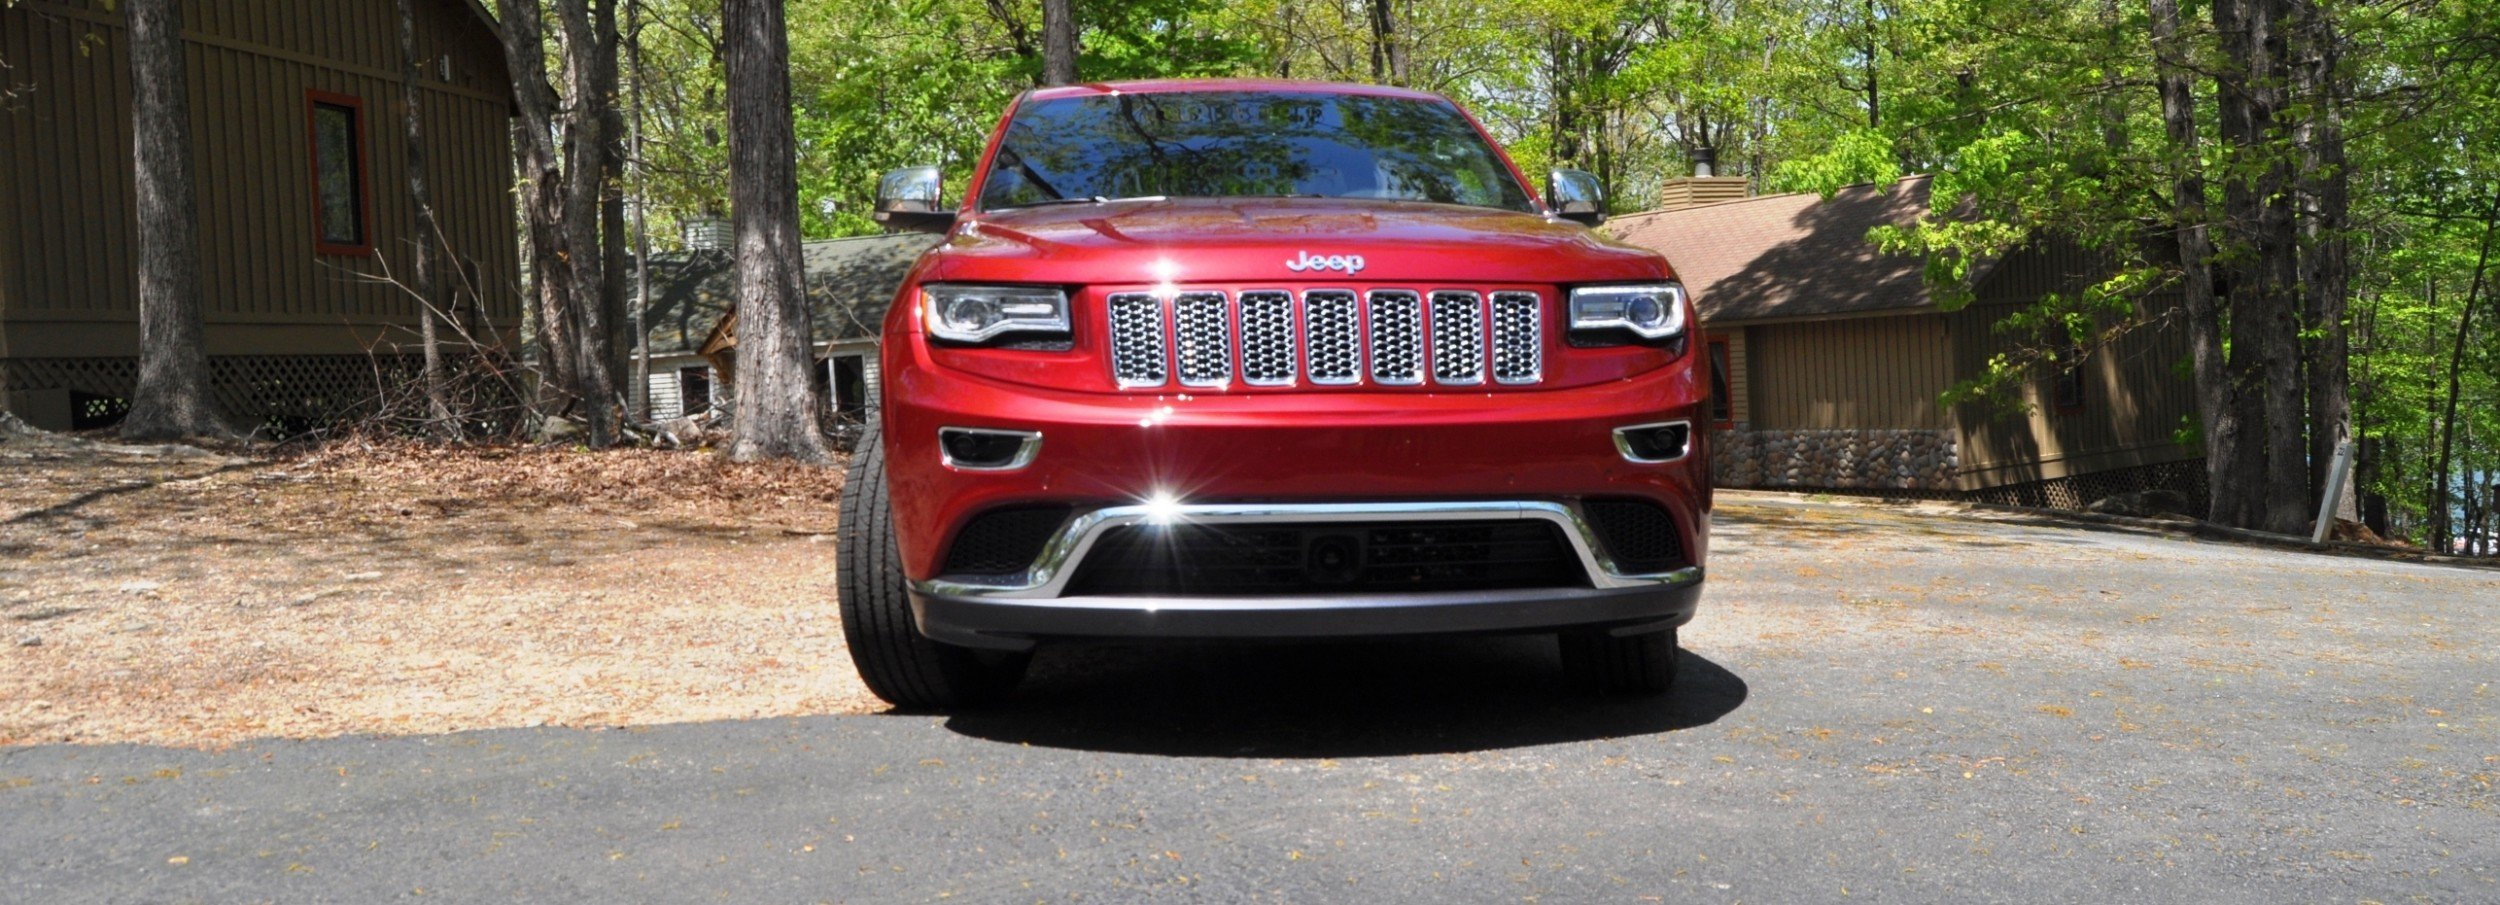 hd video road test review 2014 jeep grand cherokee summit v6 outstanding but cramped and. Black Bedroom Furniture Sets. Home Design Ideas